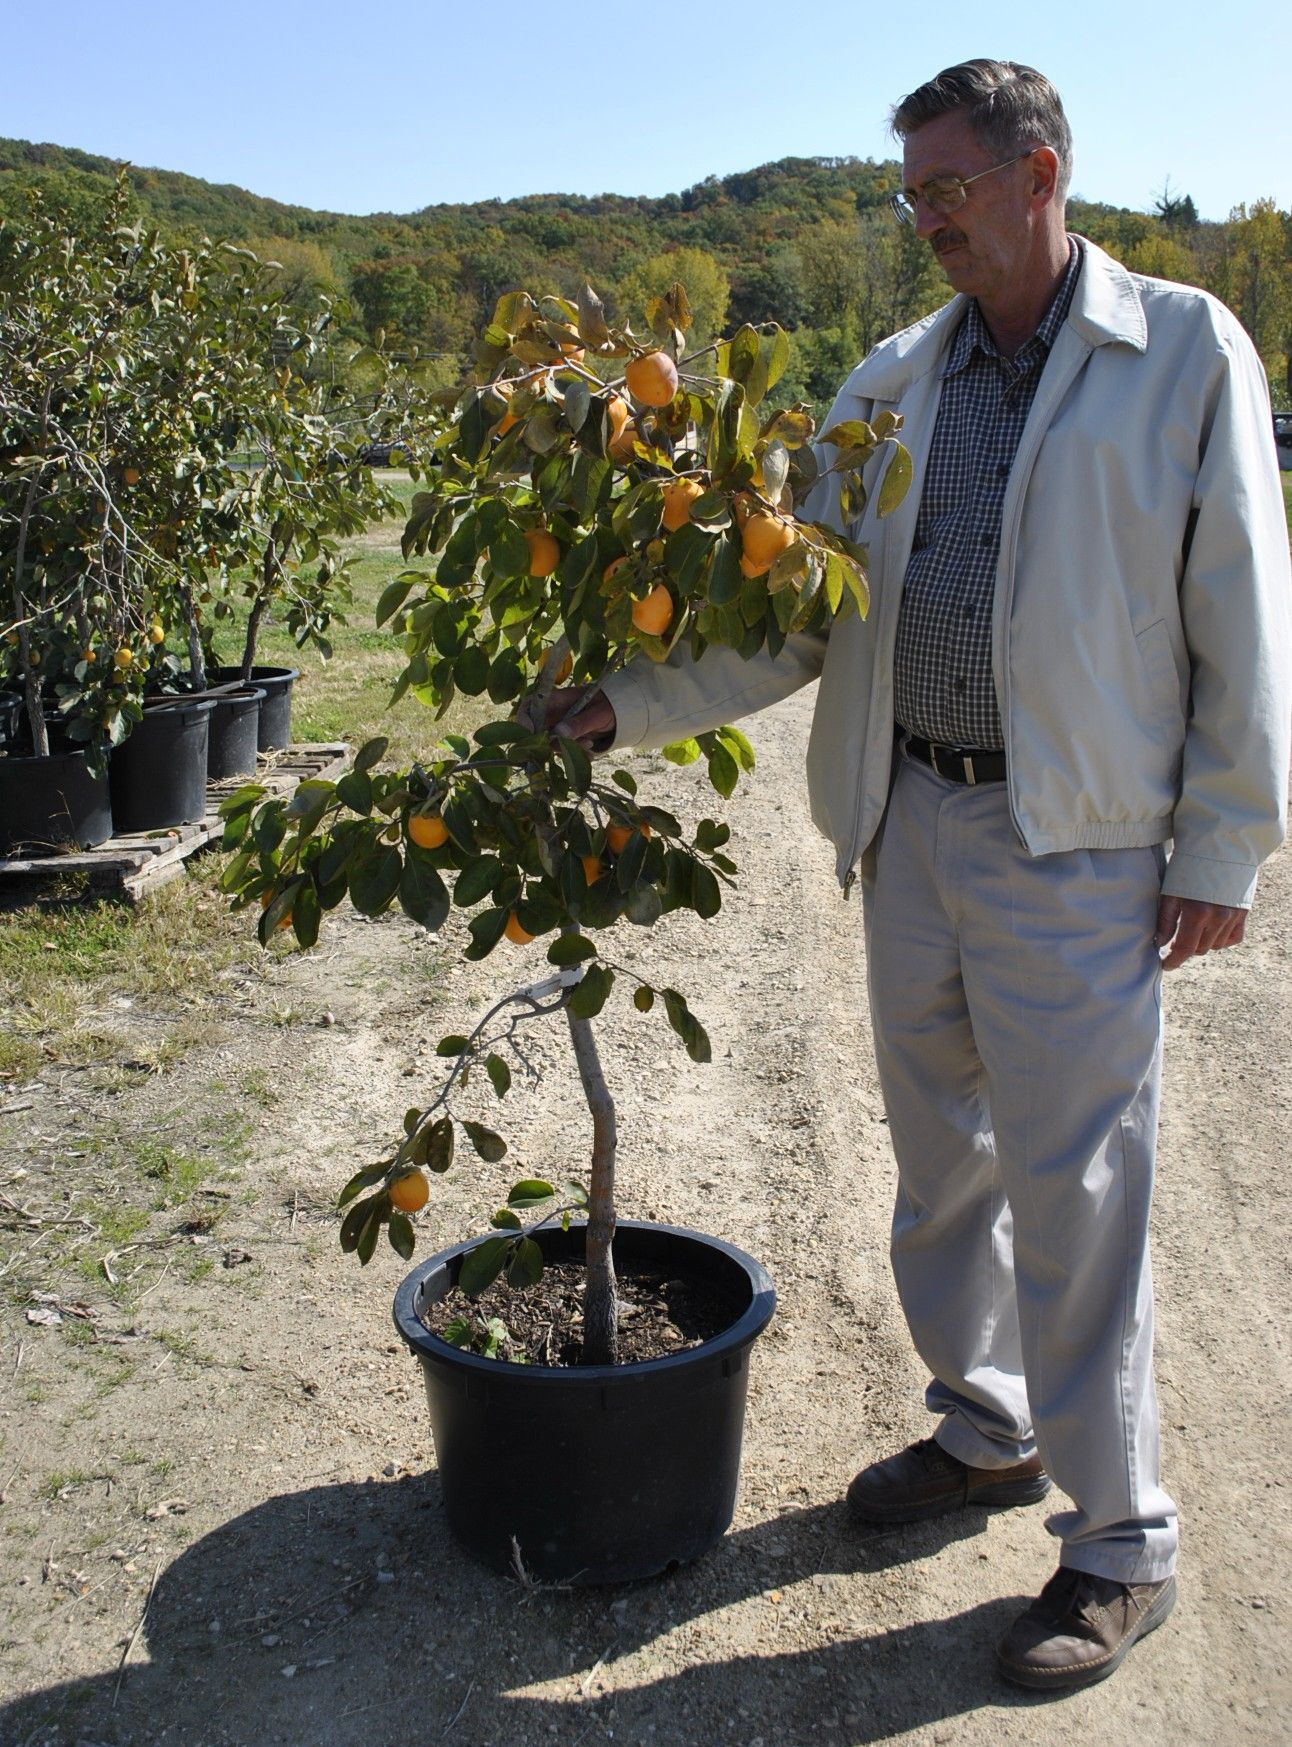 Growing Fruit Trees In Containers Part 1 Growing With Stark Bro S Fruit Trees In Containers Growing Fruit Trees Potted Trees